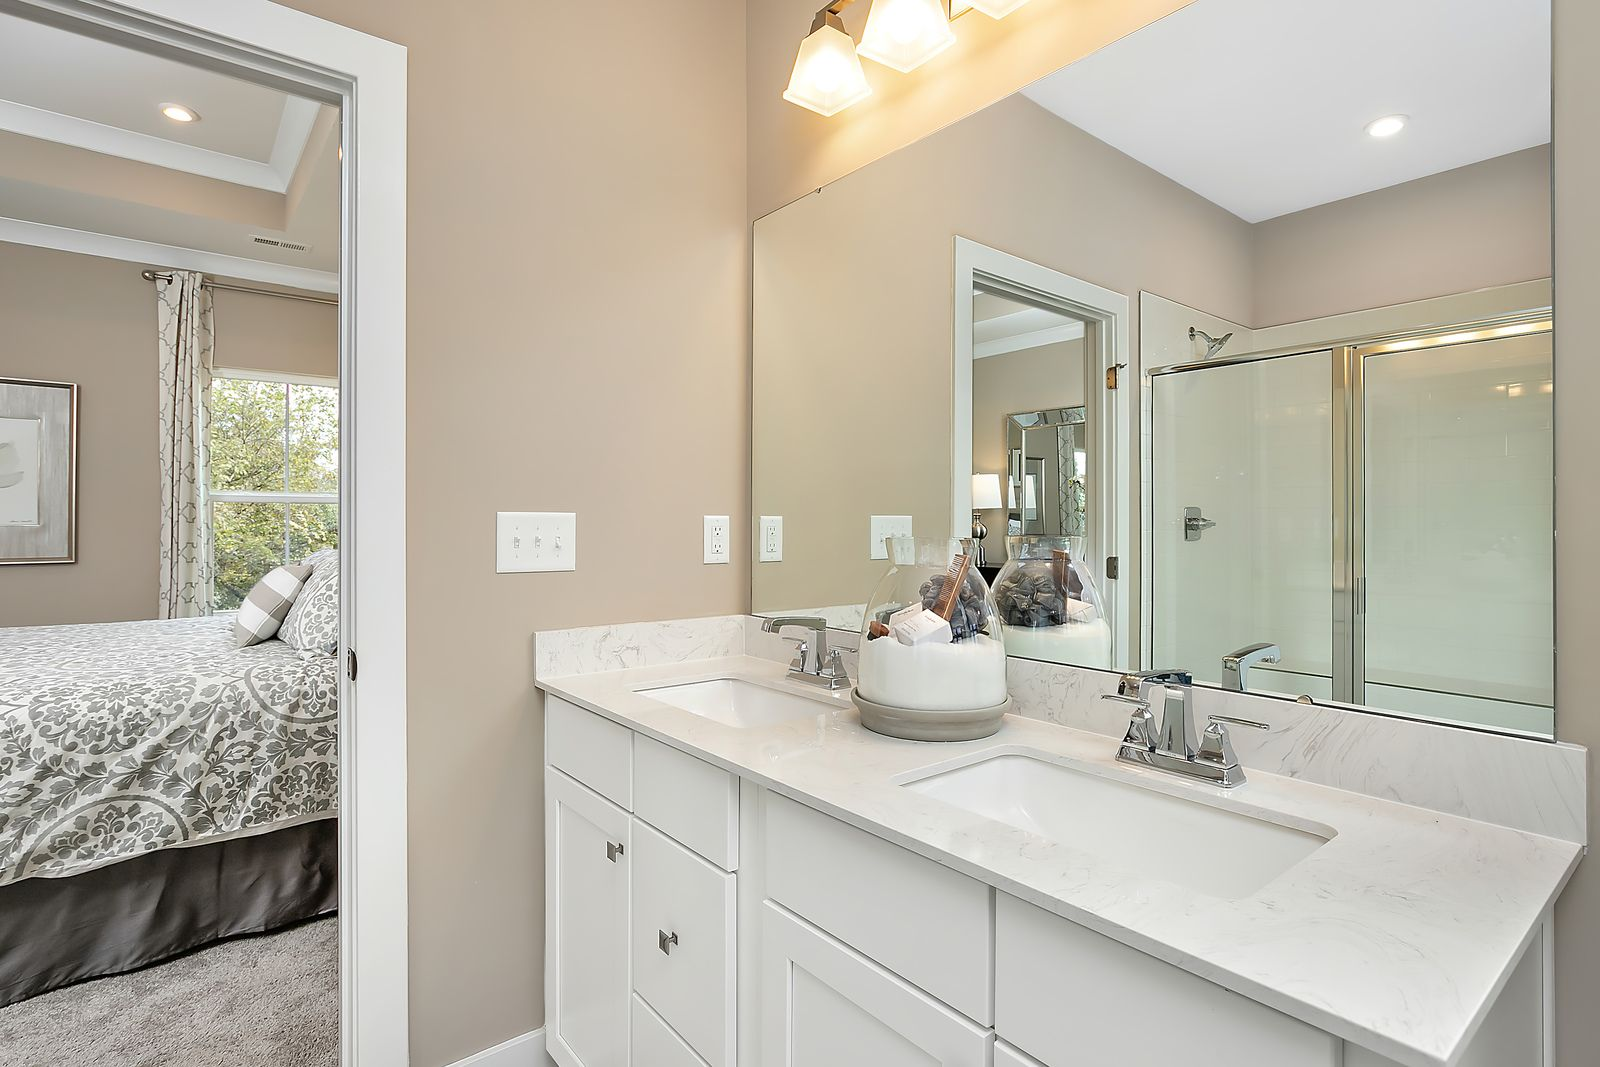 Bathroom featured in the Bramante By Ryan Homes in Sussex, DE